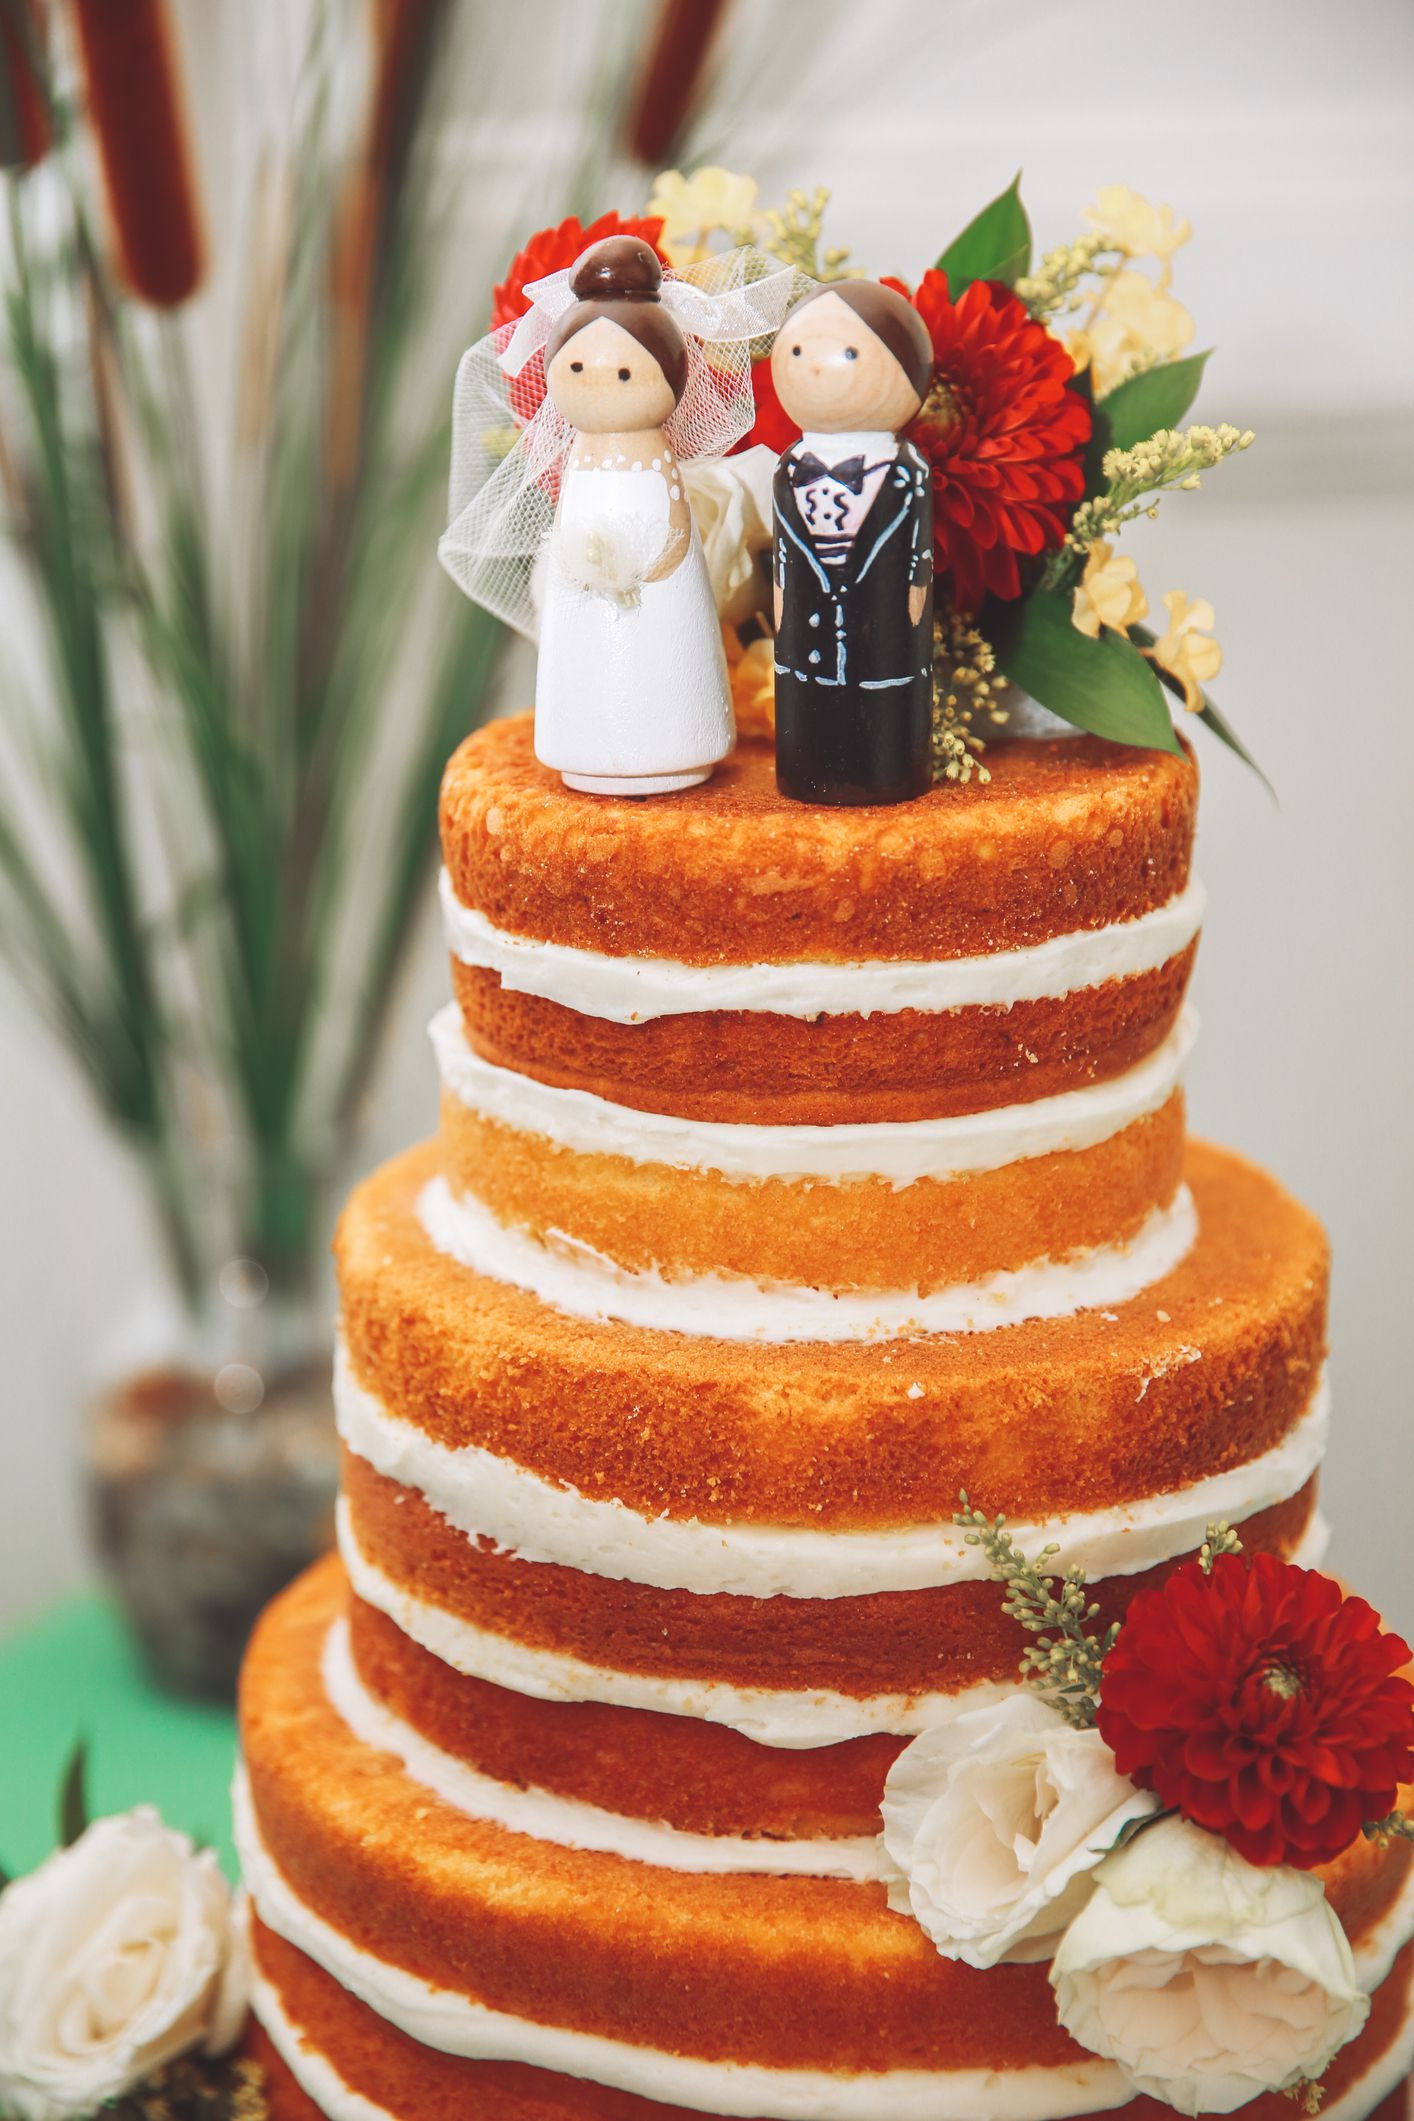 Best ideas about DIY Wedding Cake . Save or Pin Inspiring Tales of DIY Wedding Cakes Now.